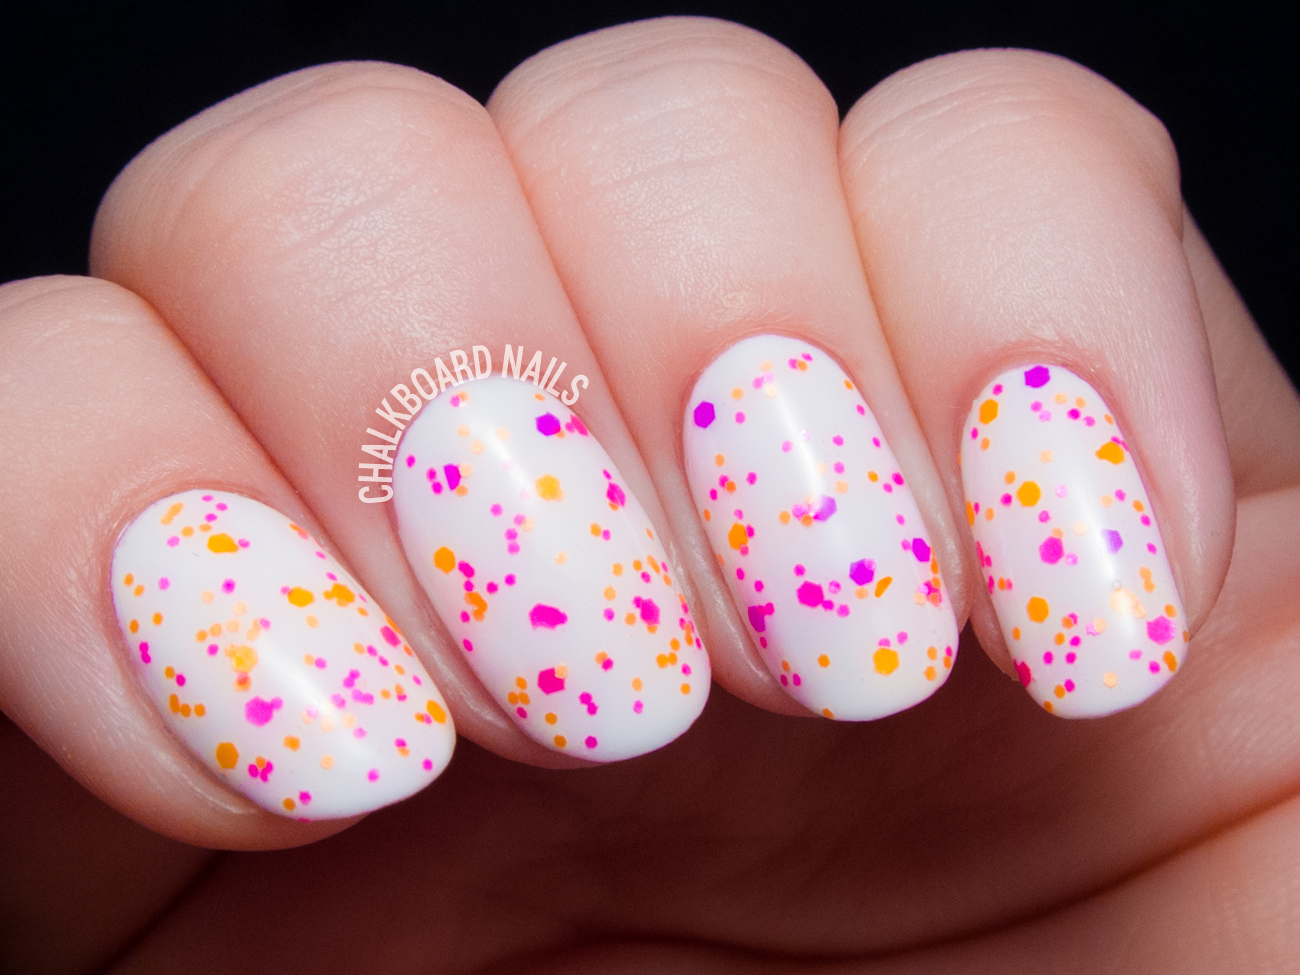 China Glaze Let the Beat Drop via @chalkboardnails